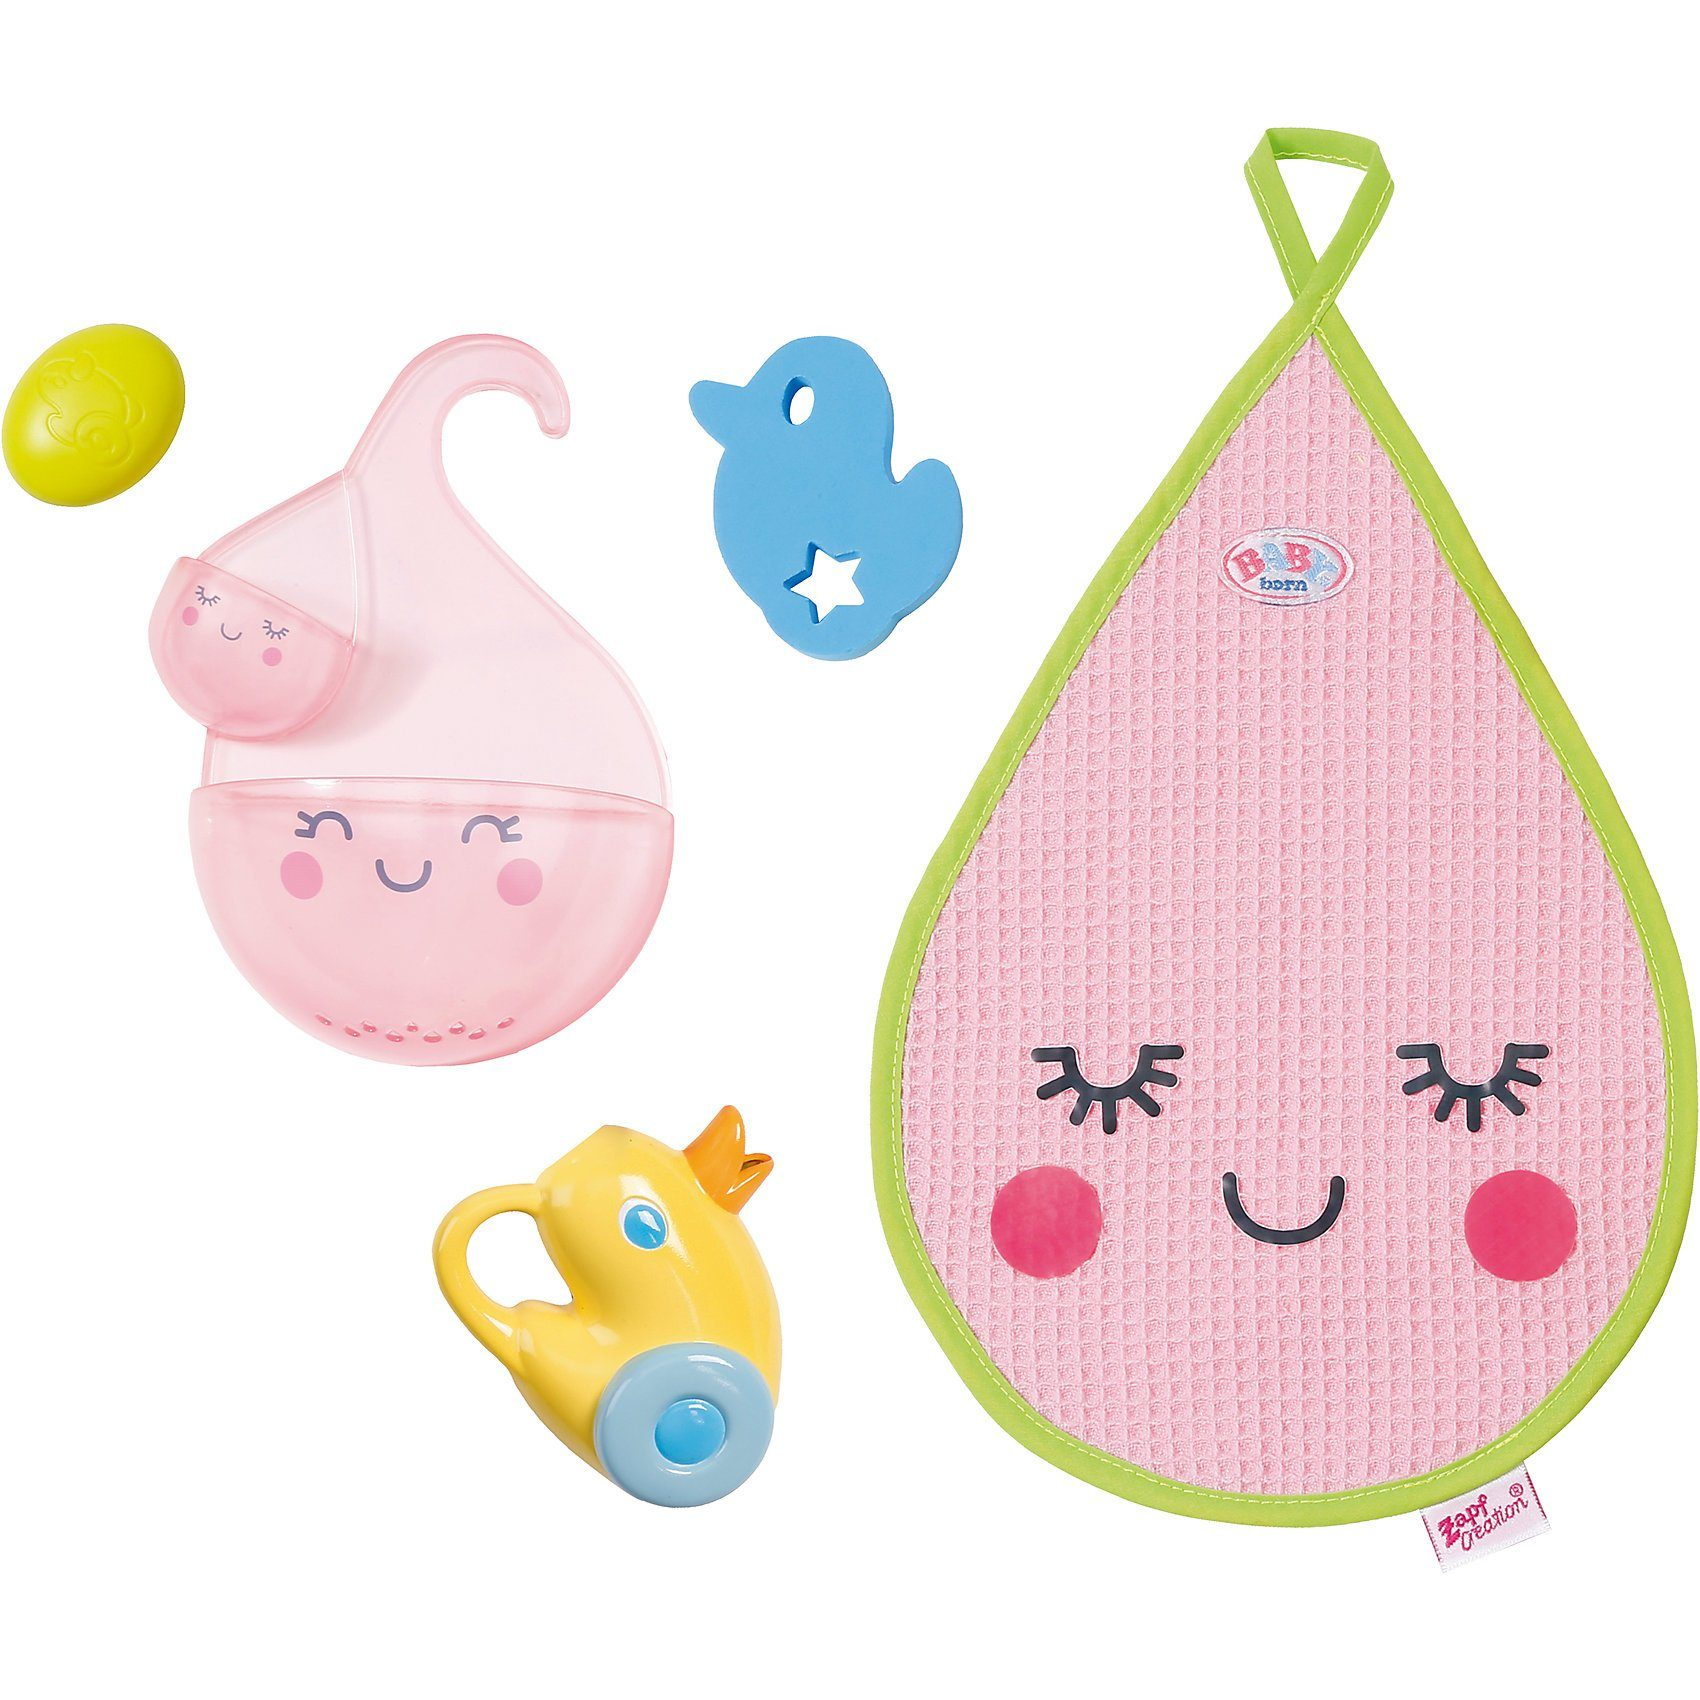 Zapf Creation® BABY born® Bade-Accessoires